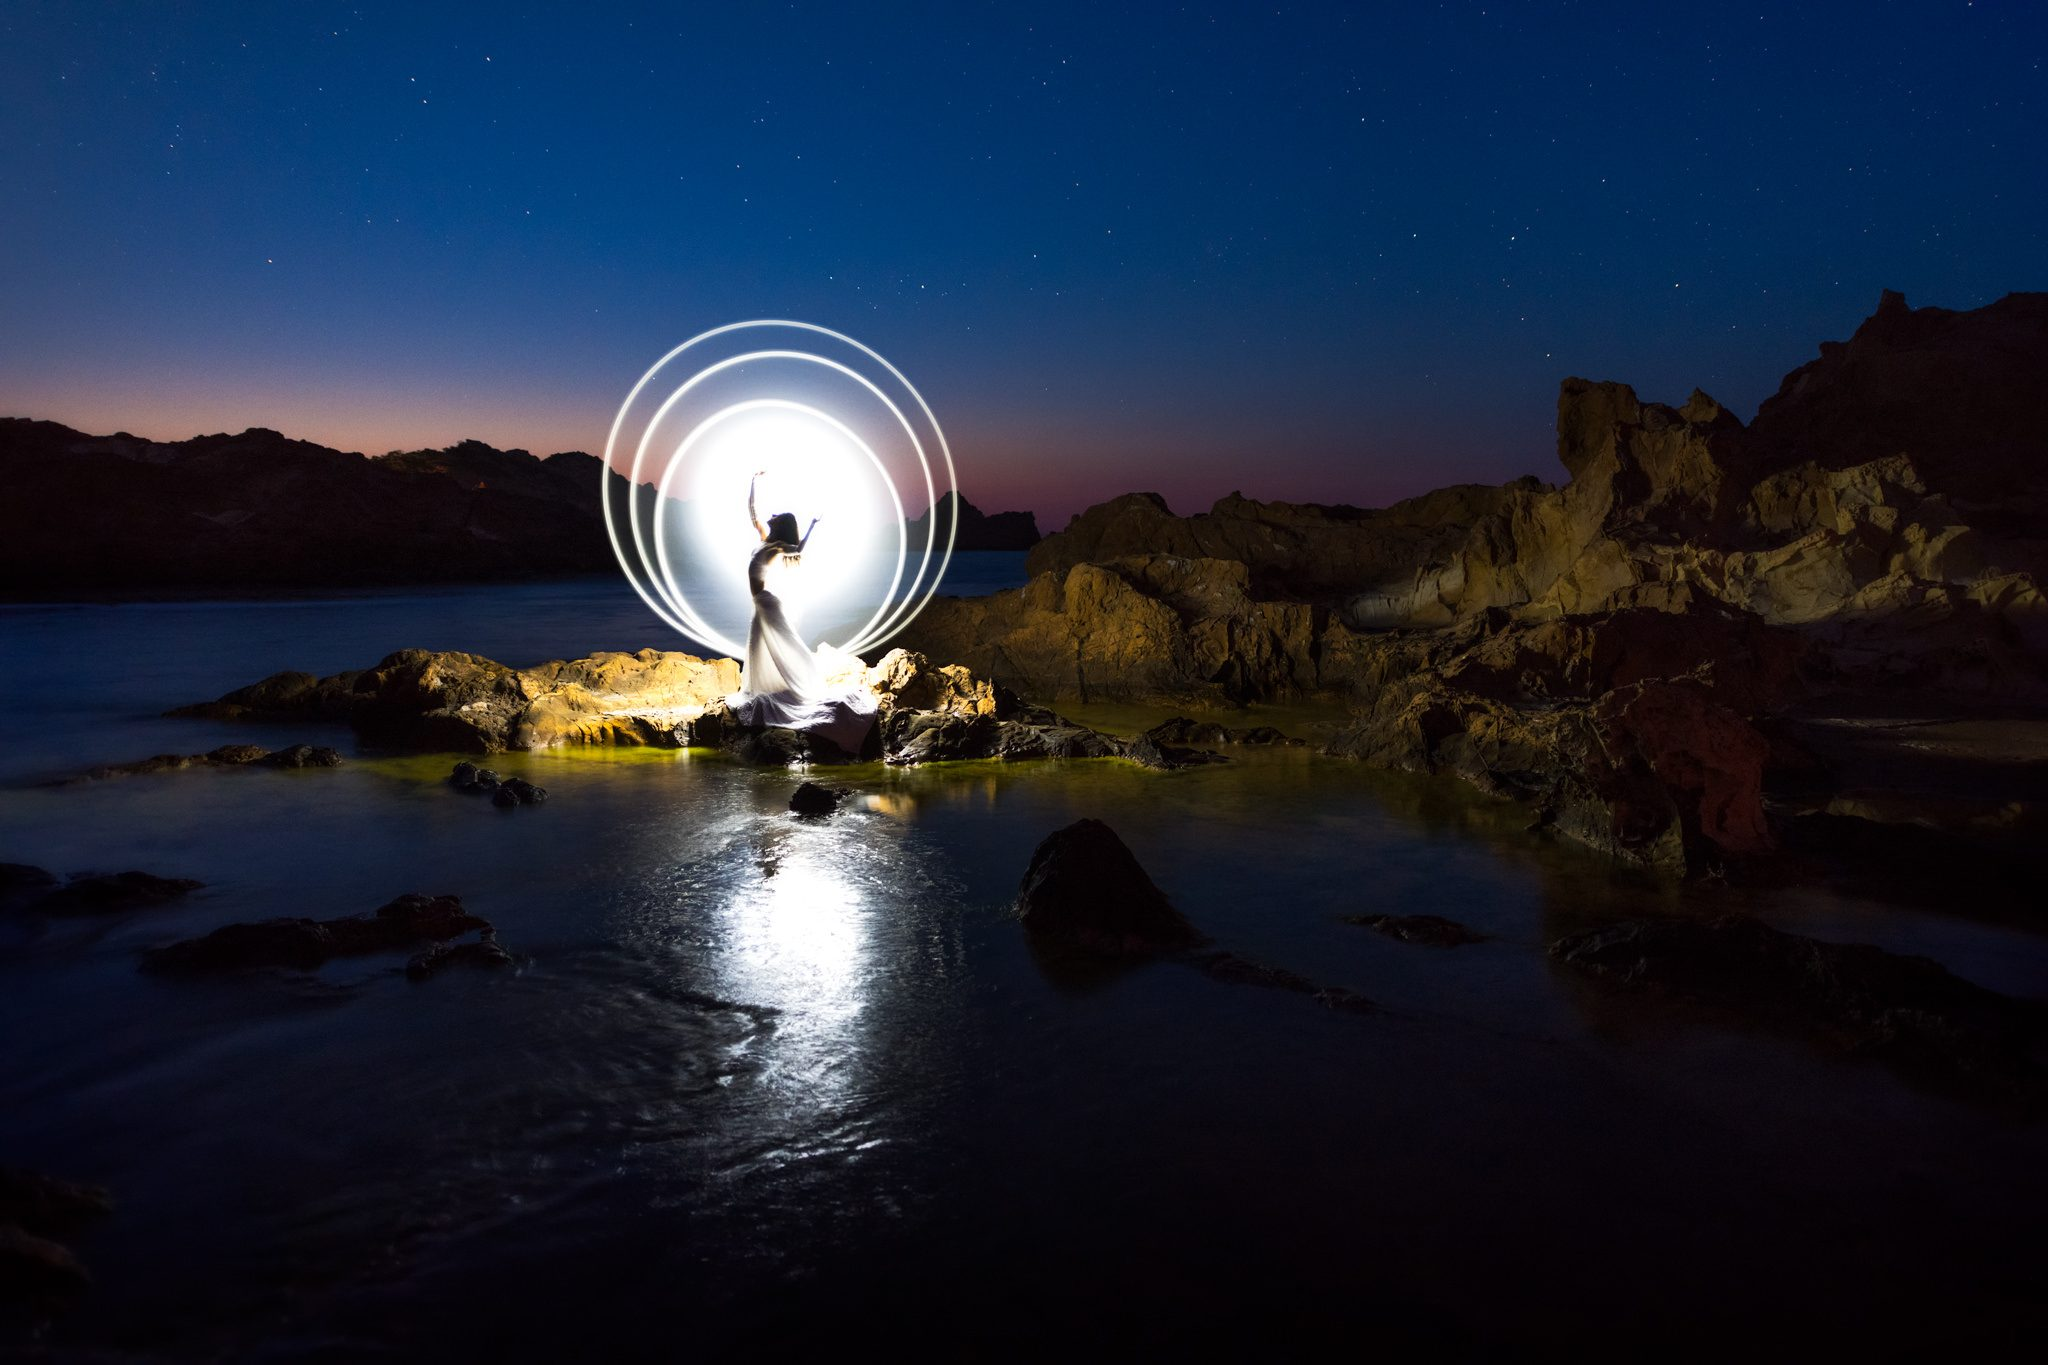 Tube light painting in Menorca, Spain.